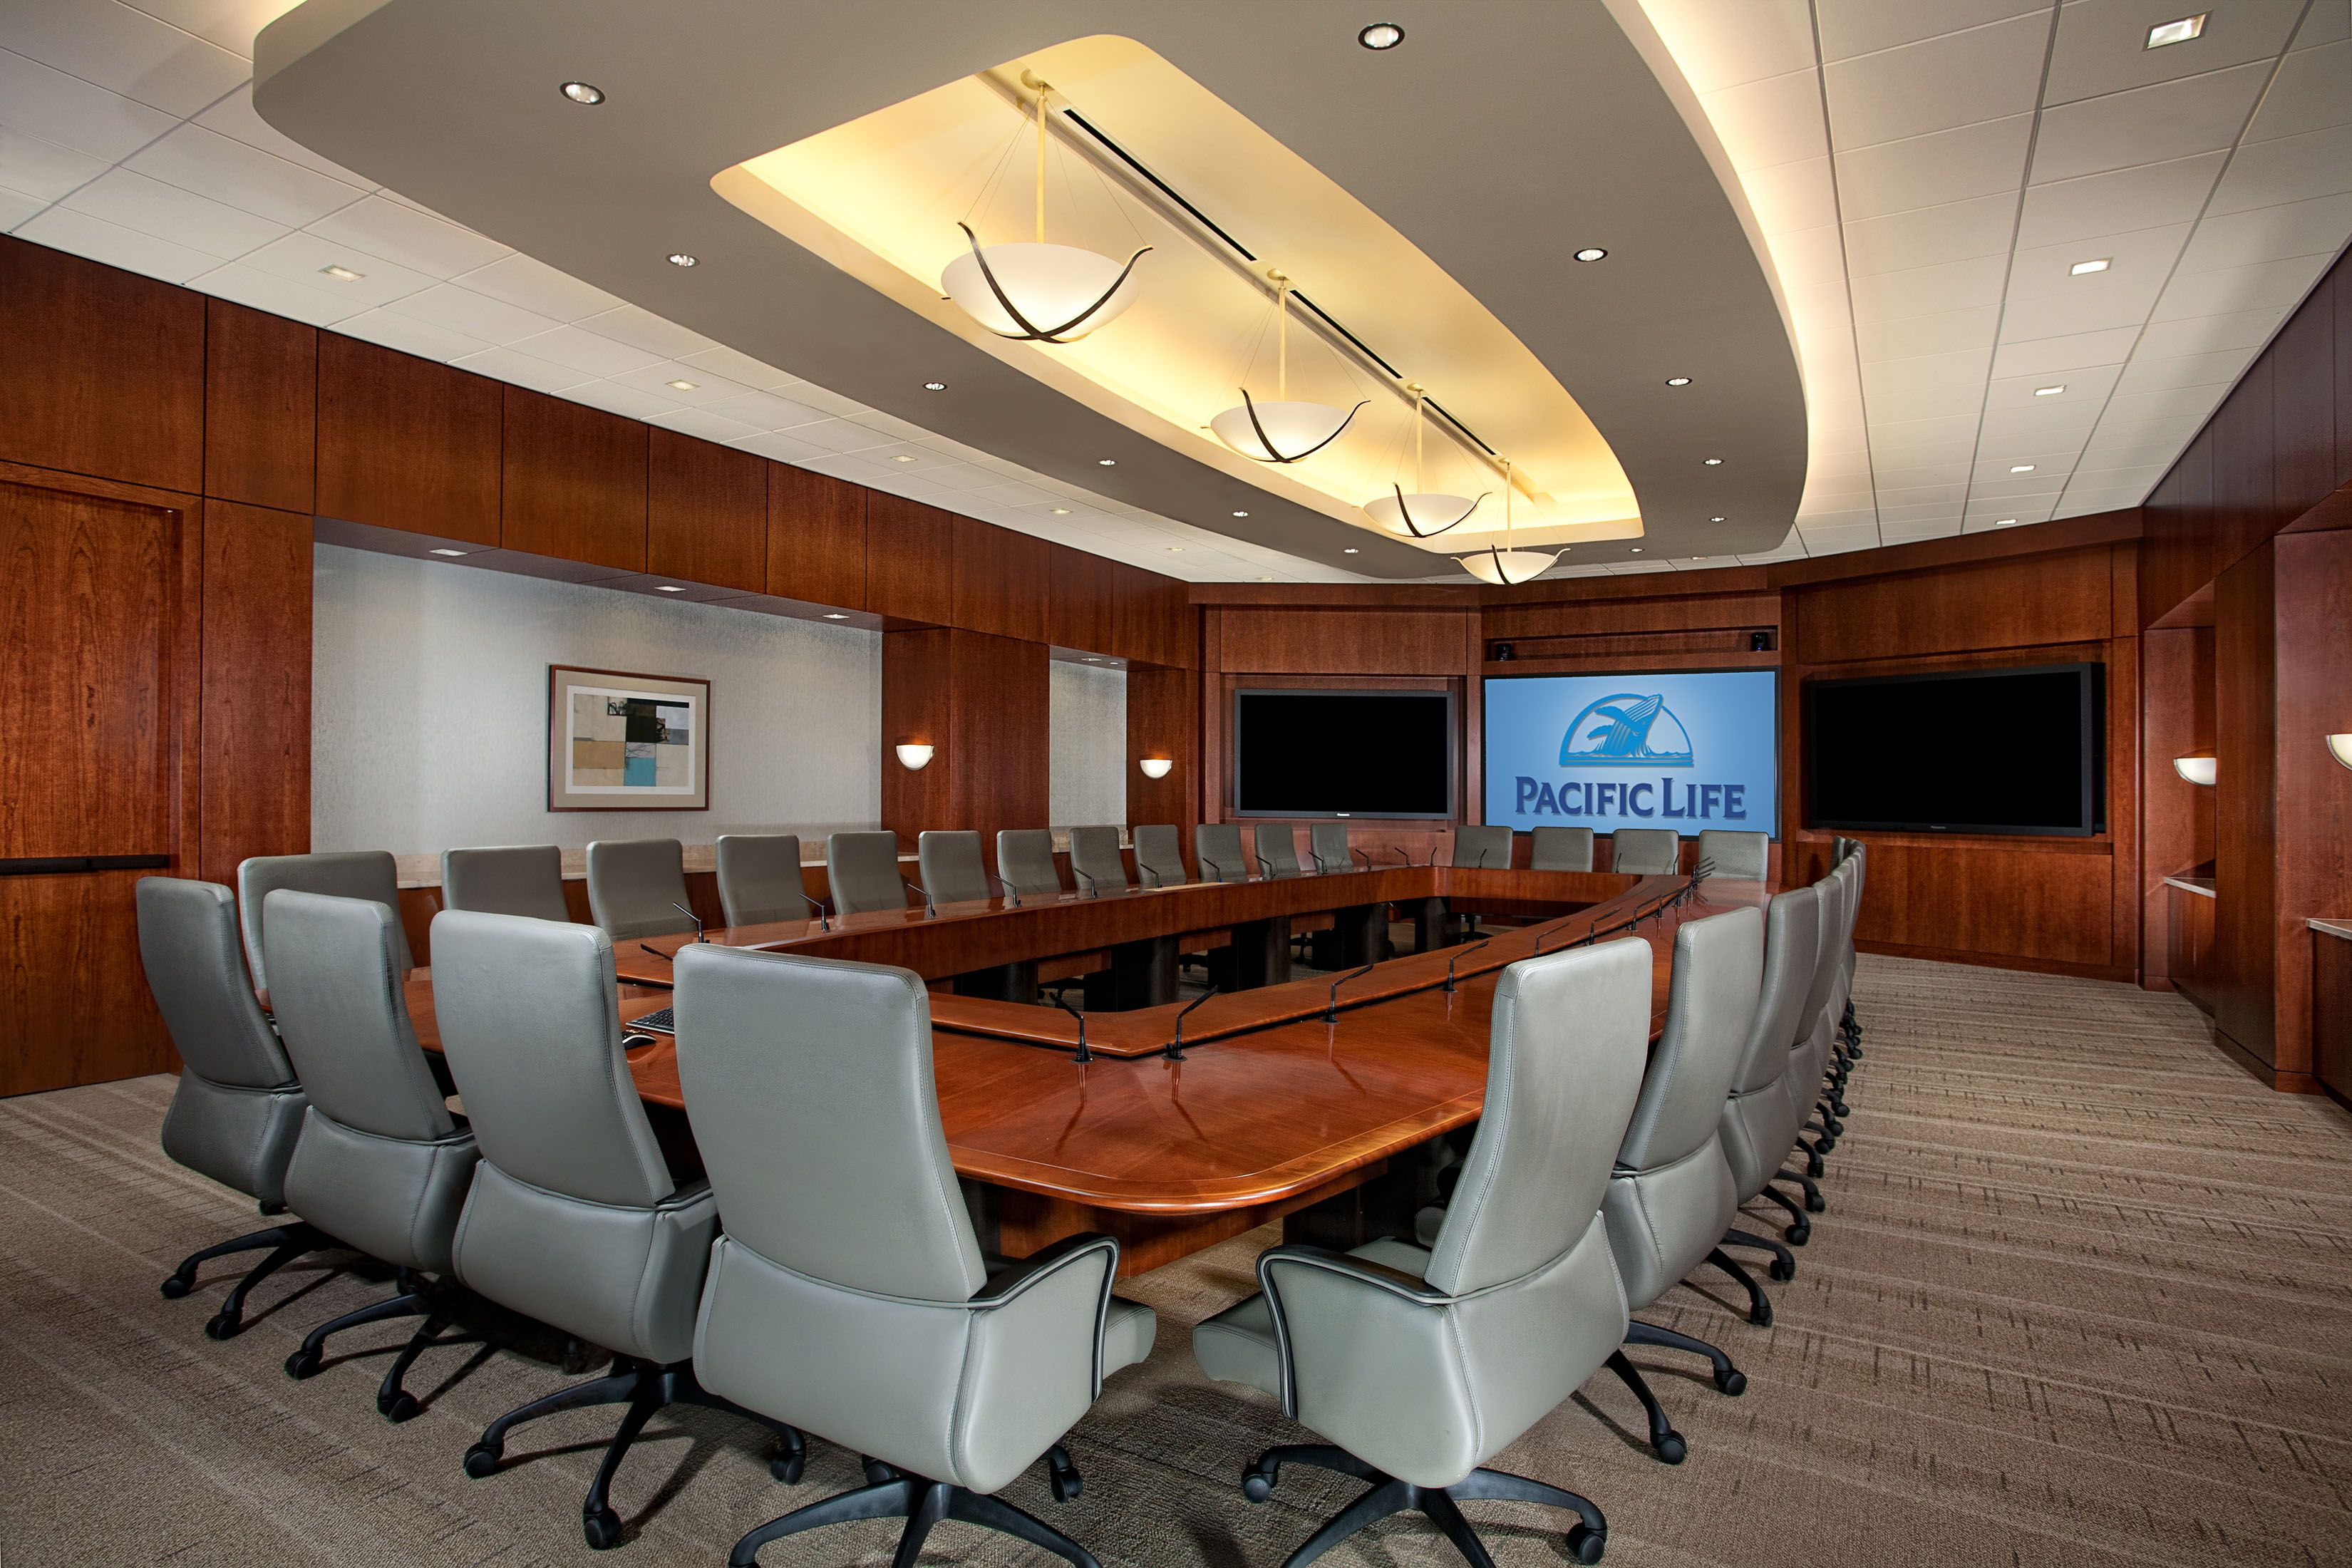 Video Conference Room Furniture Vadodara Gujarat India Turnkey Office Interior Solutions